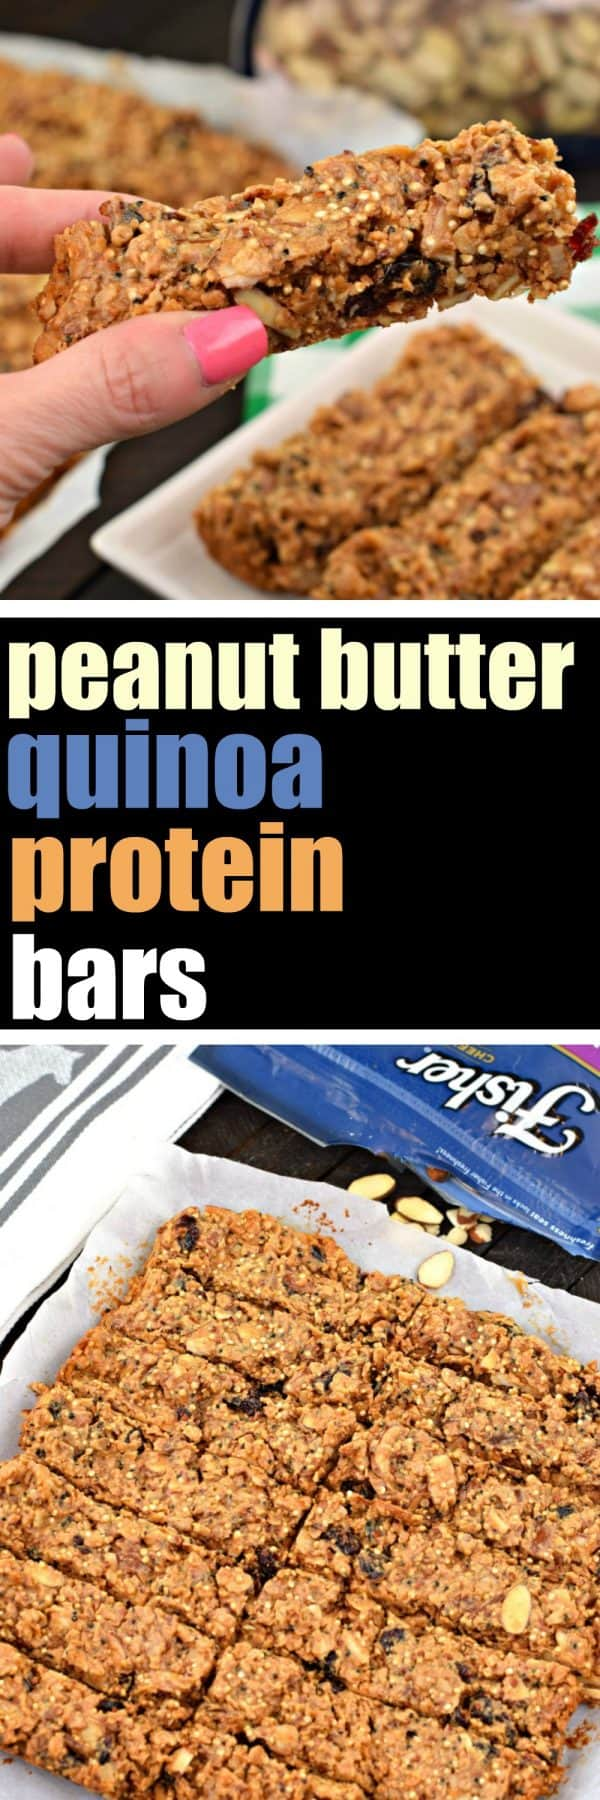 Peanut Butter, Protein, Quinoa, Bars, Almonds, Protein Bars, Post Workout, Recovery Snack, Snack, Healthy, Fisher Nuts,